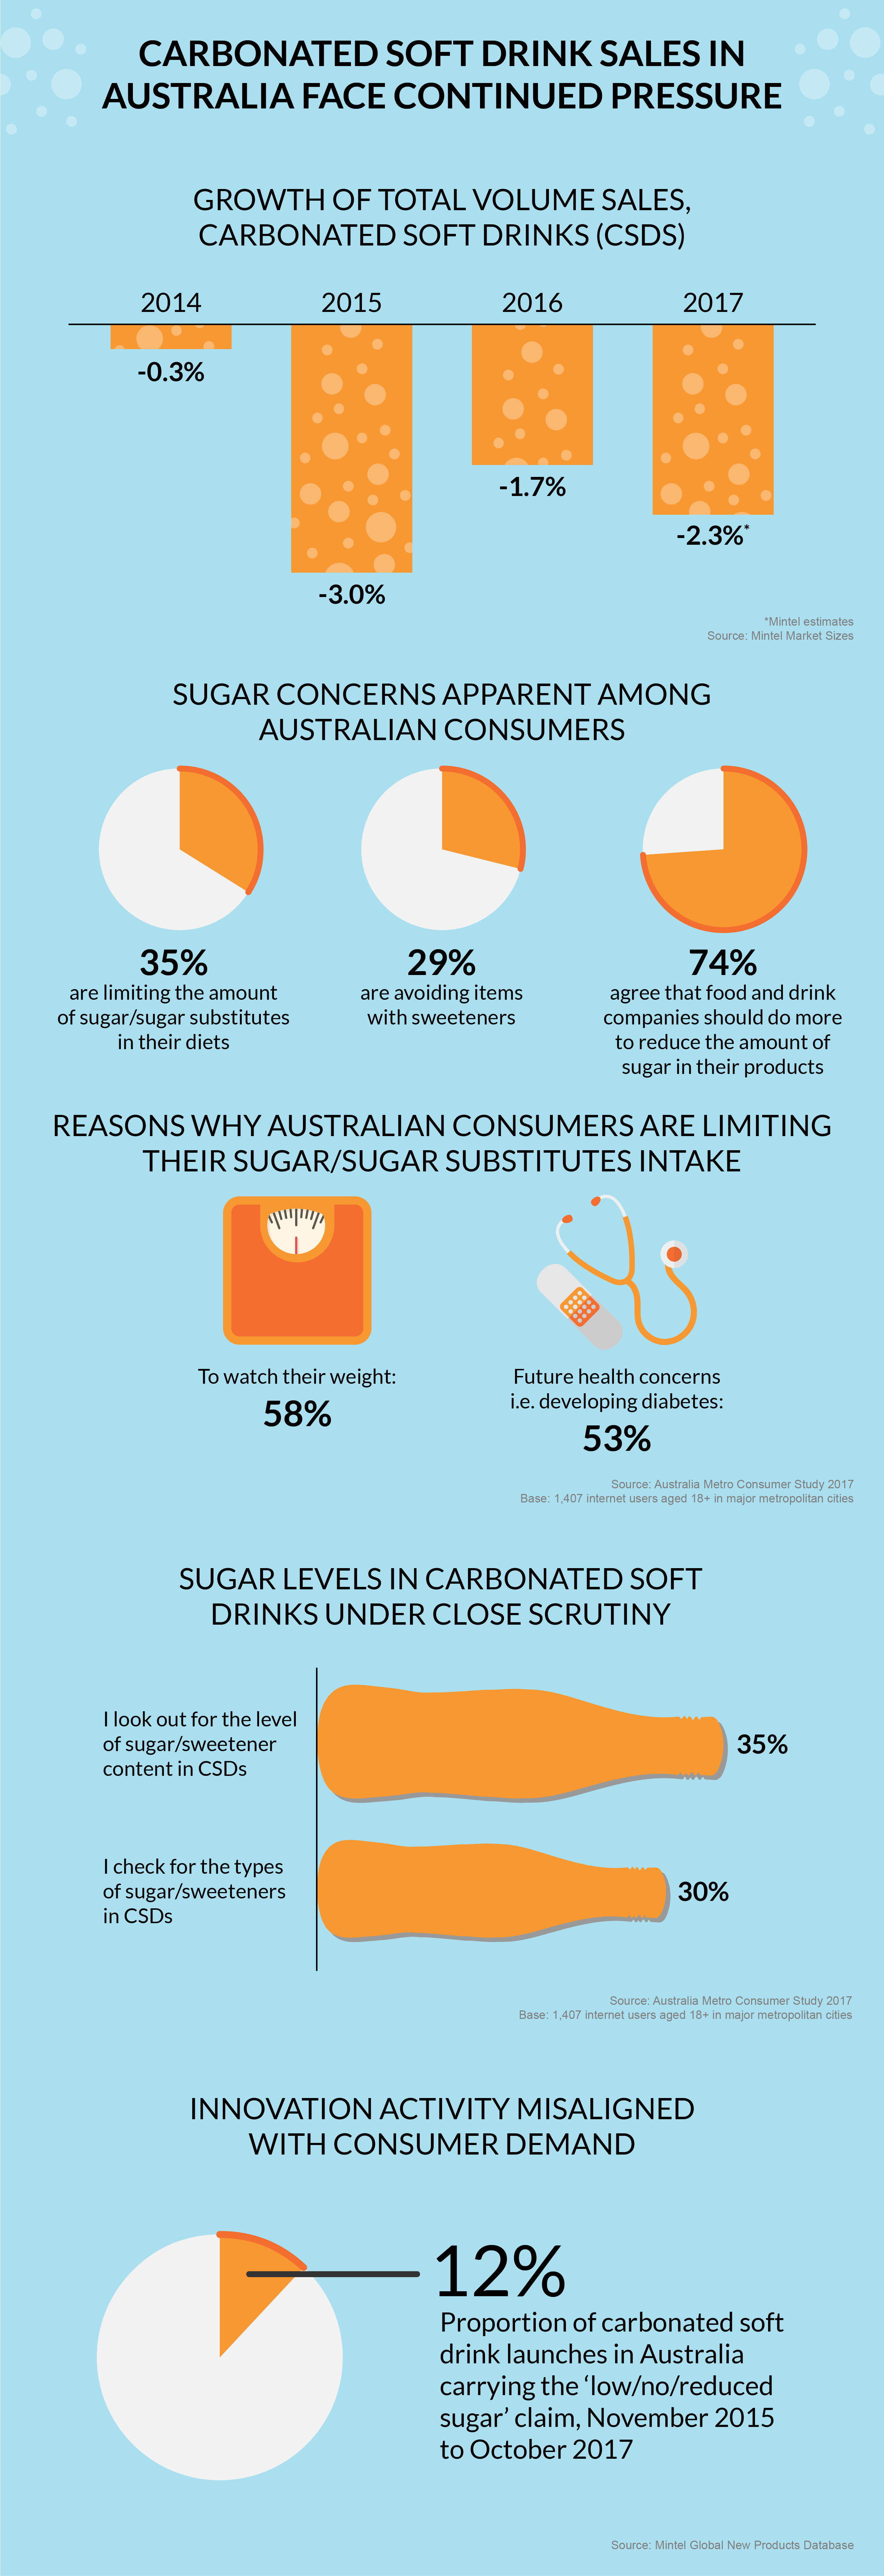 APAC Australia Sugar Press Release Infographic-FULL-WEB